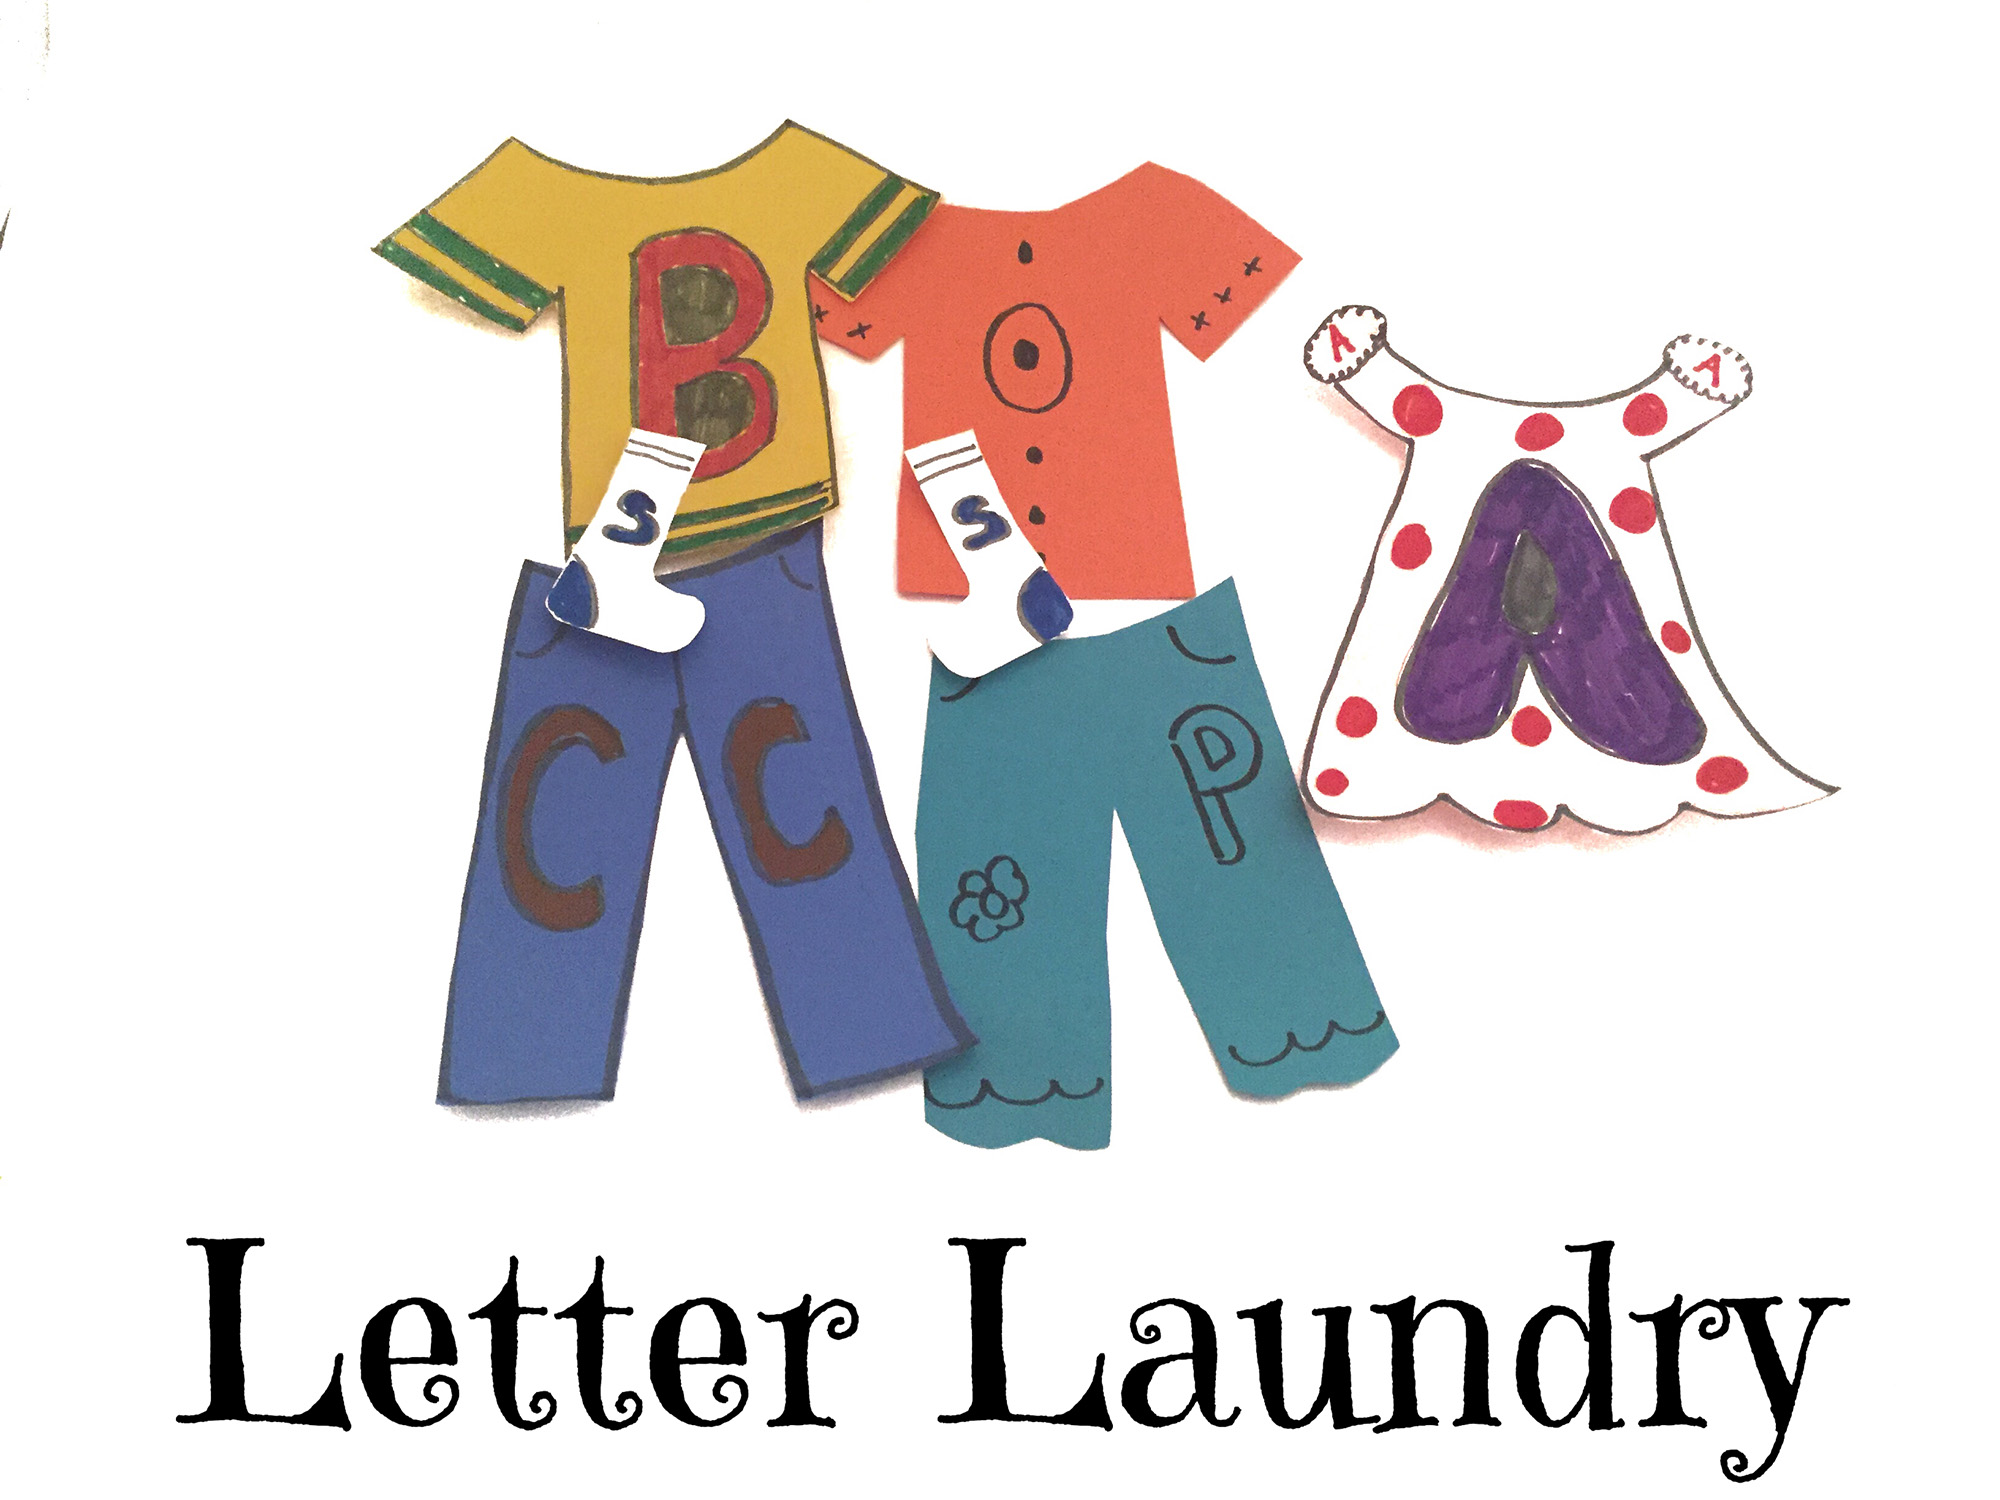 Paper clothes with letters on them